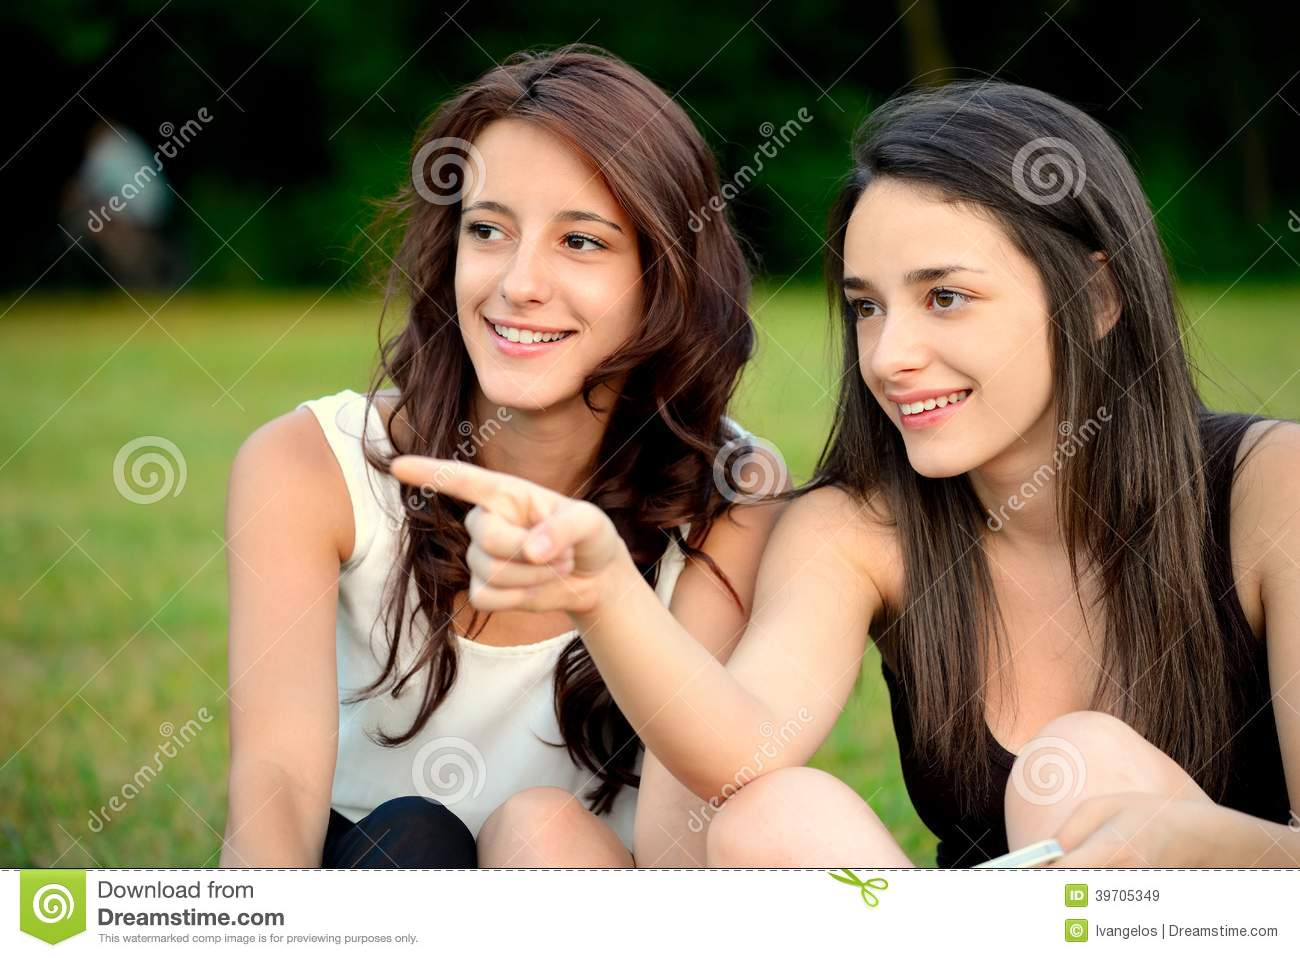 single lesbian women in parks How to go through an artificial insemination if you are single or lesbian if you don't have a male partner, but still want a baby, artificial insemination may be something for you.